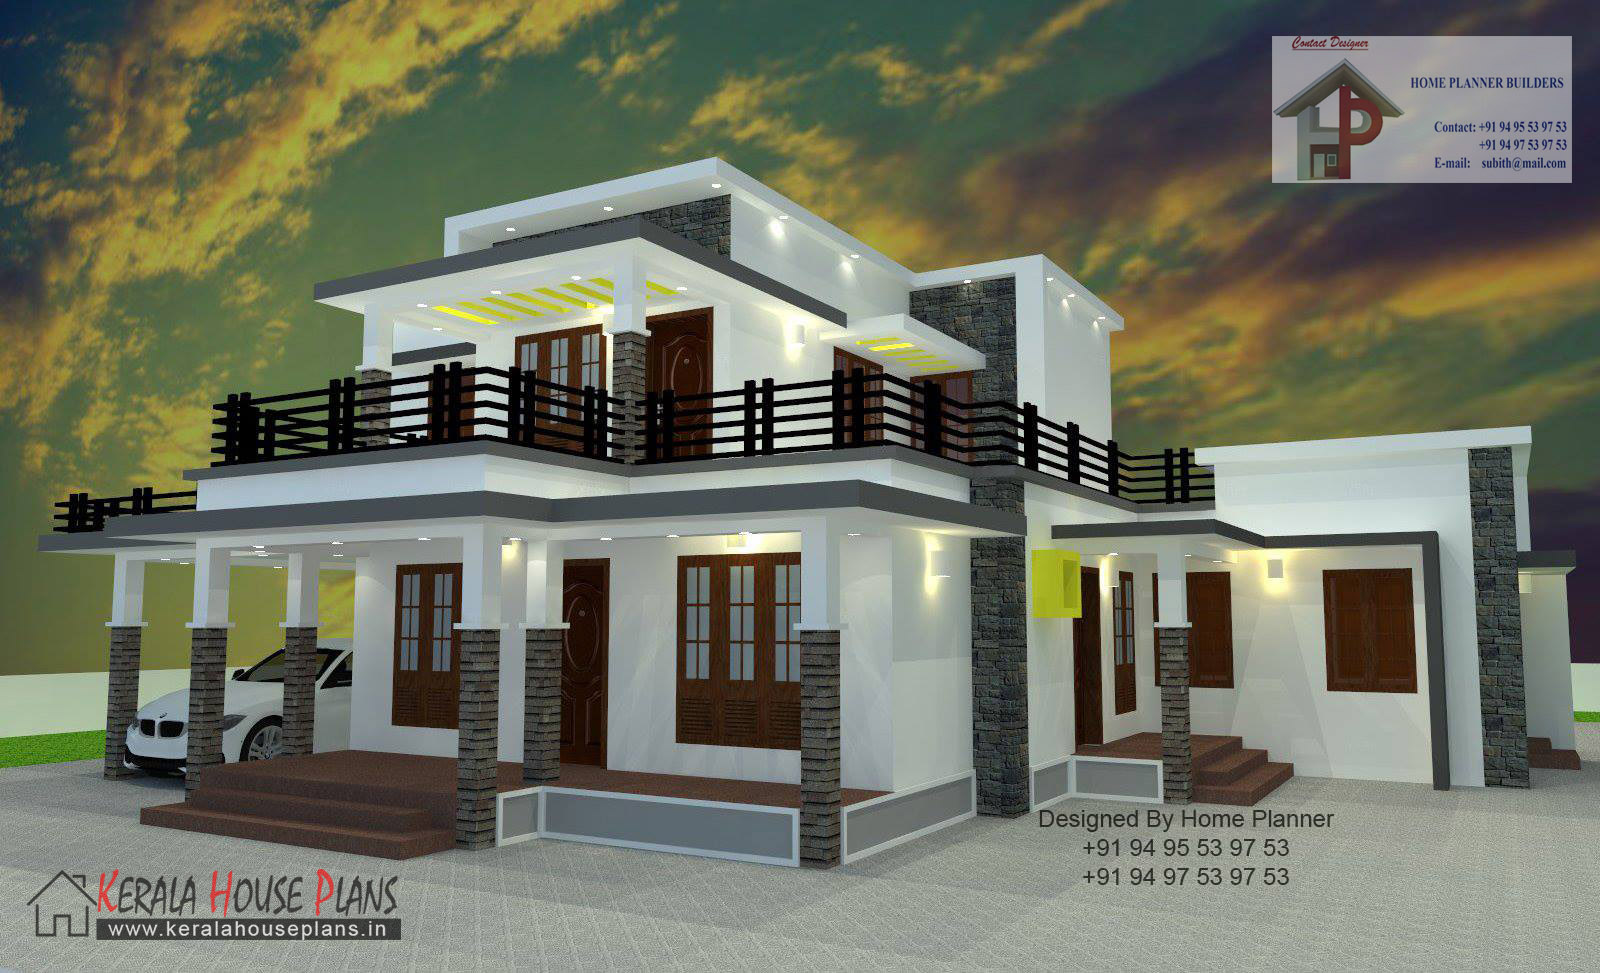 2000 Sqft Box Type House Kerala House Plans Designs: home design house plans